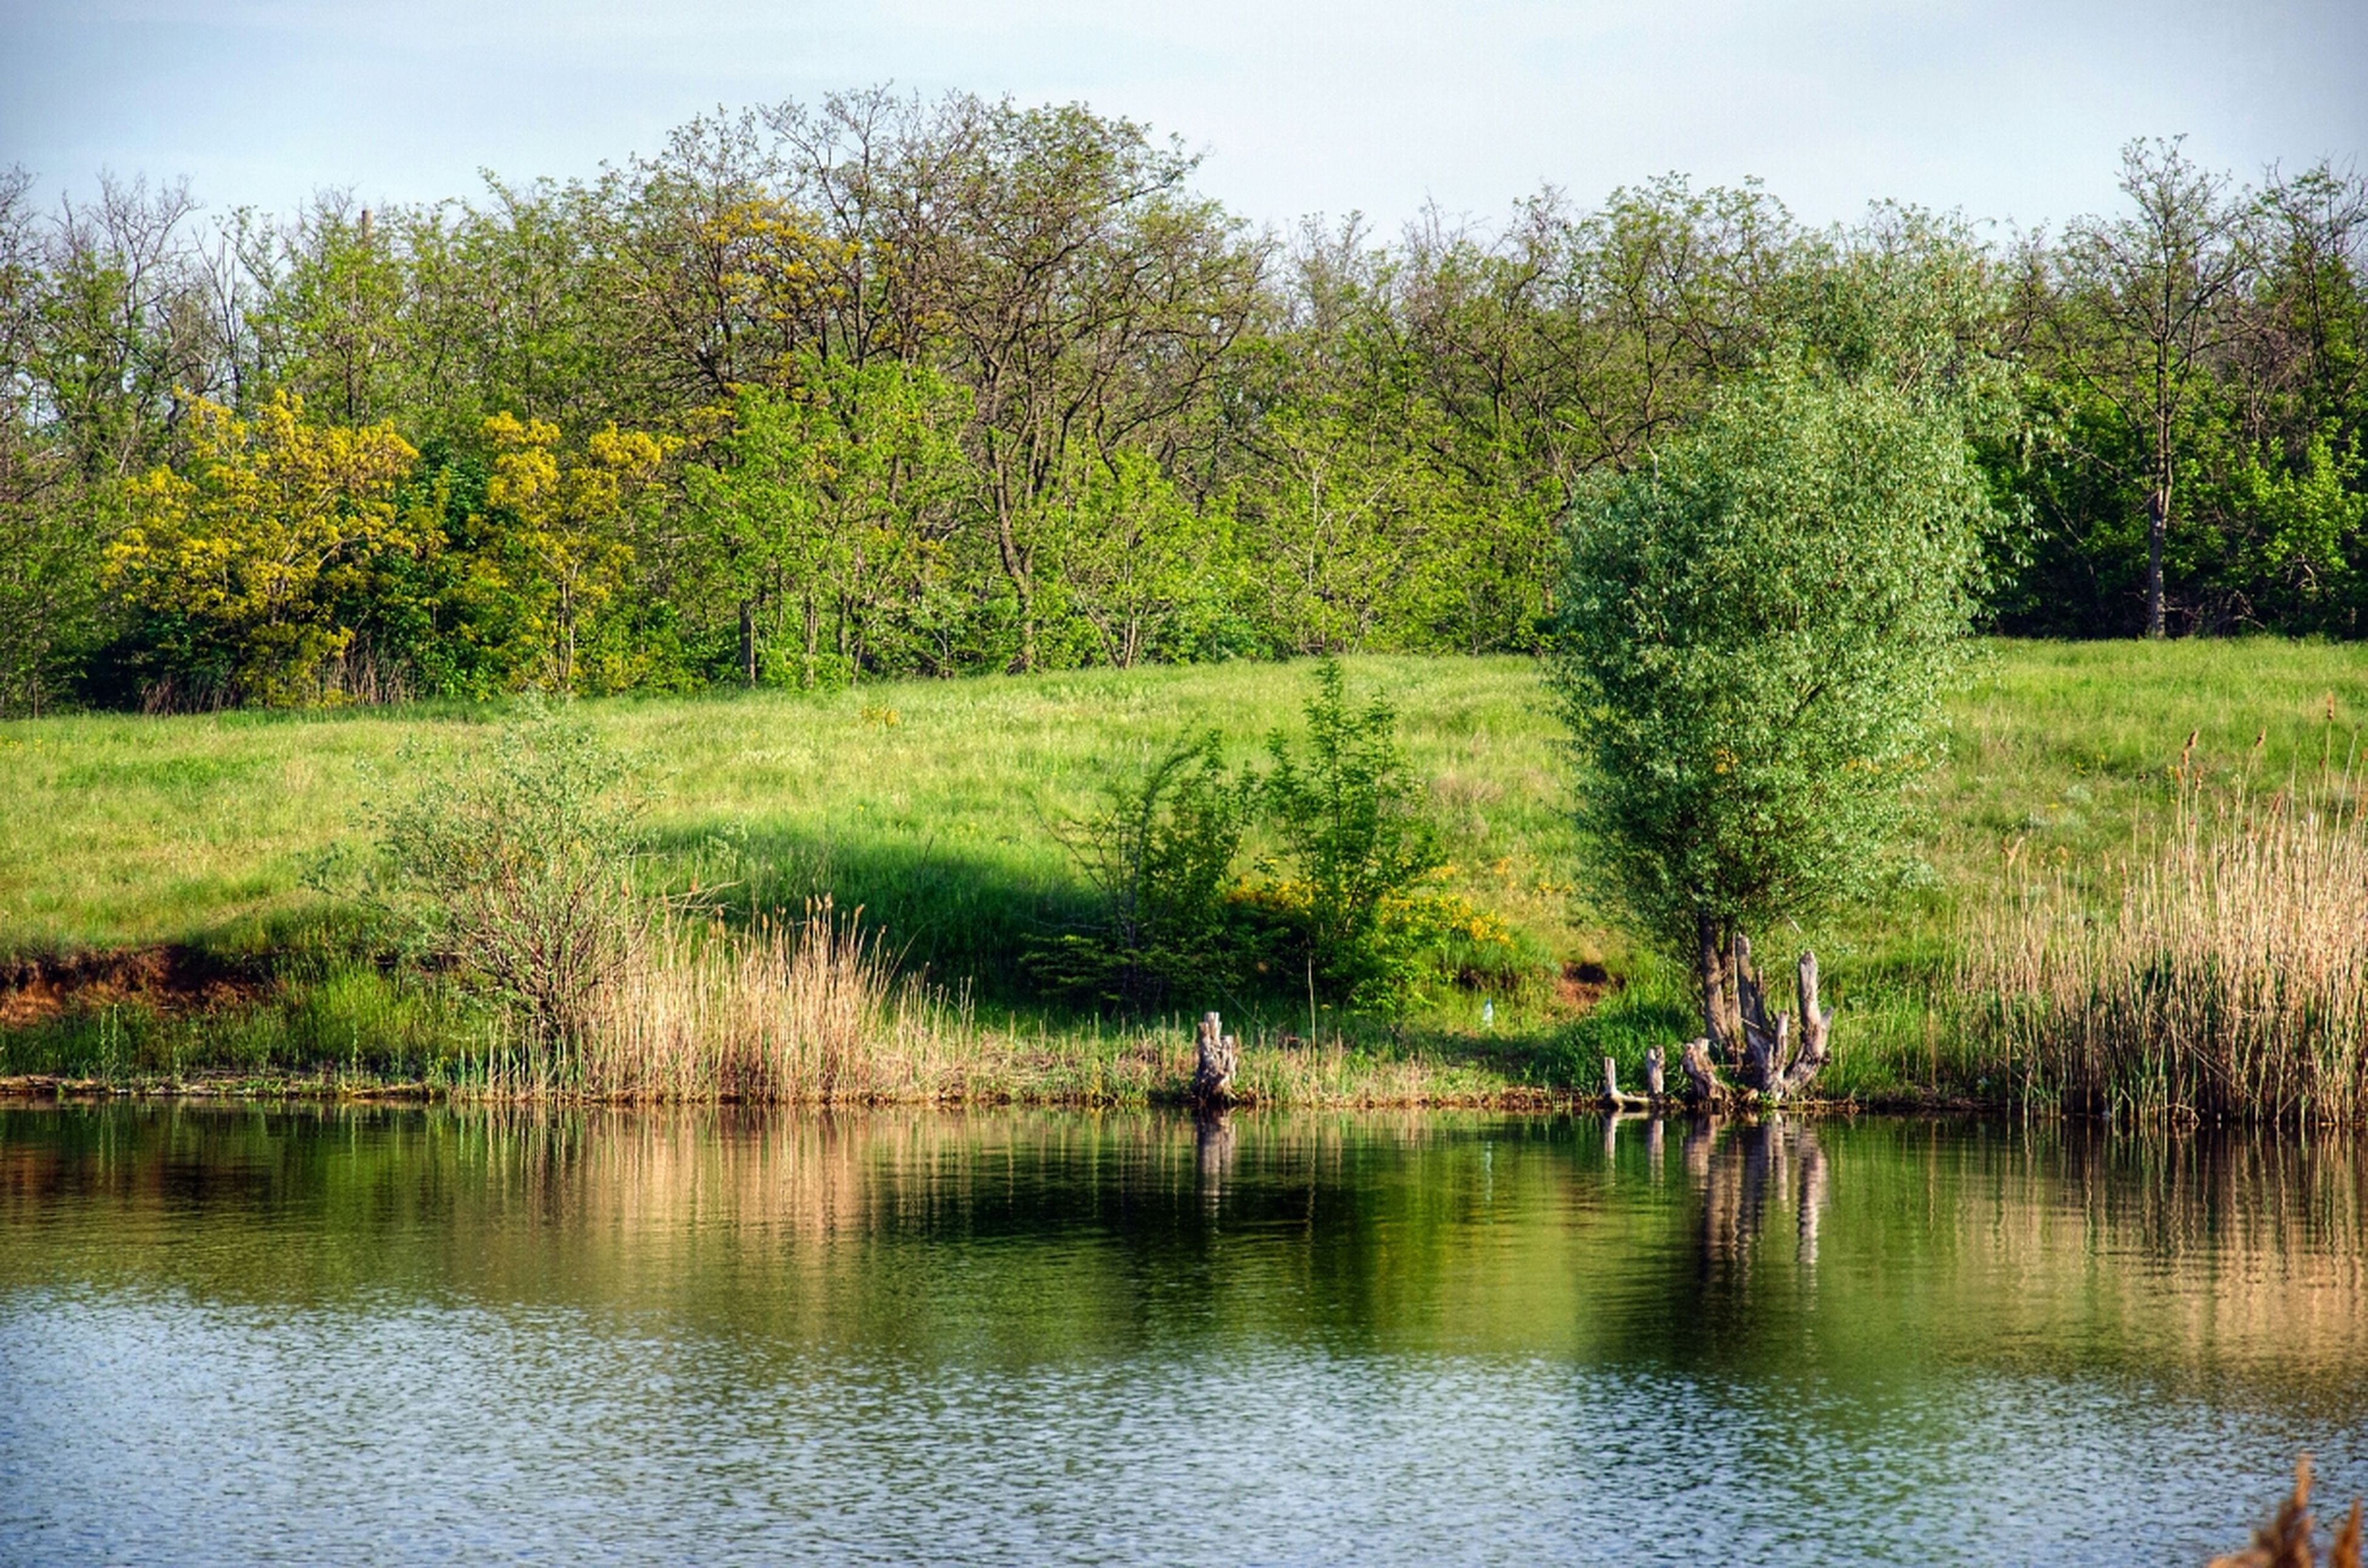 tree, water, tranquility, reflection, lake, tranquil scene, growth, beauty in nature, nature, scenics, green color, waterfront, grass, idyllic, pond, river, sky, day, plant, outdoors